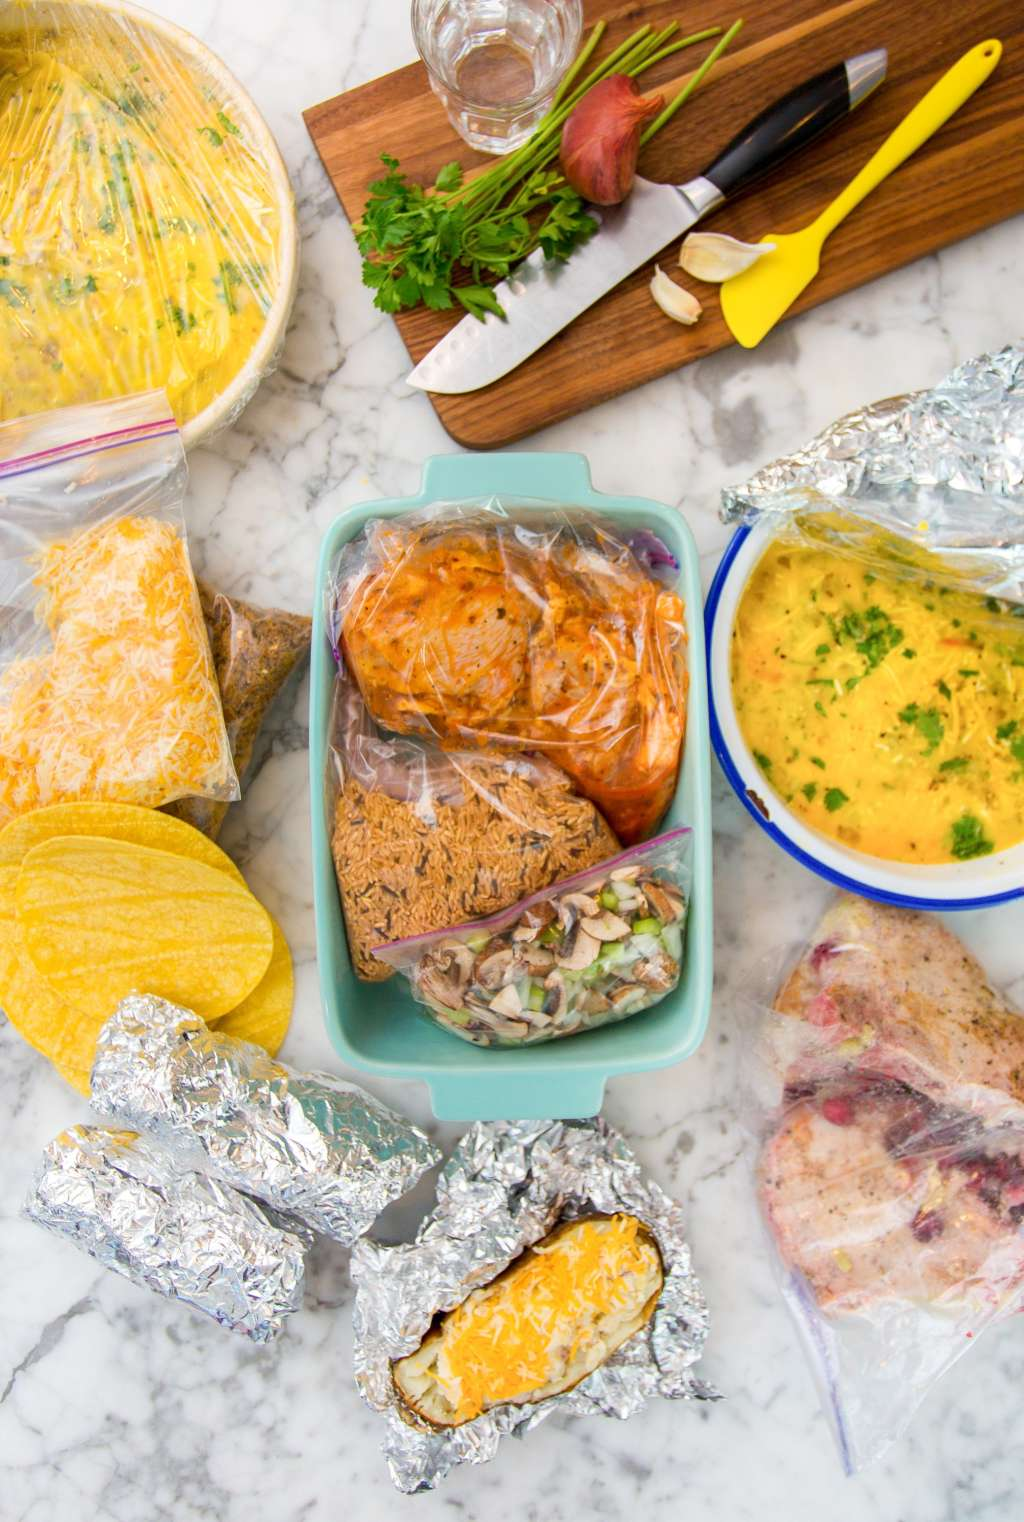 3 Meal Planning Pros Share Their Secrets